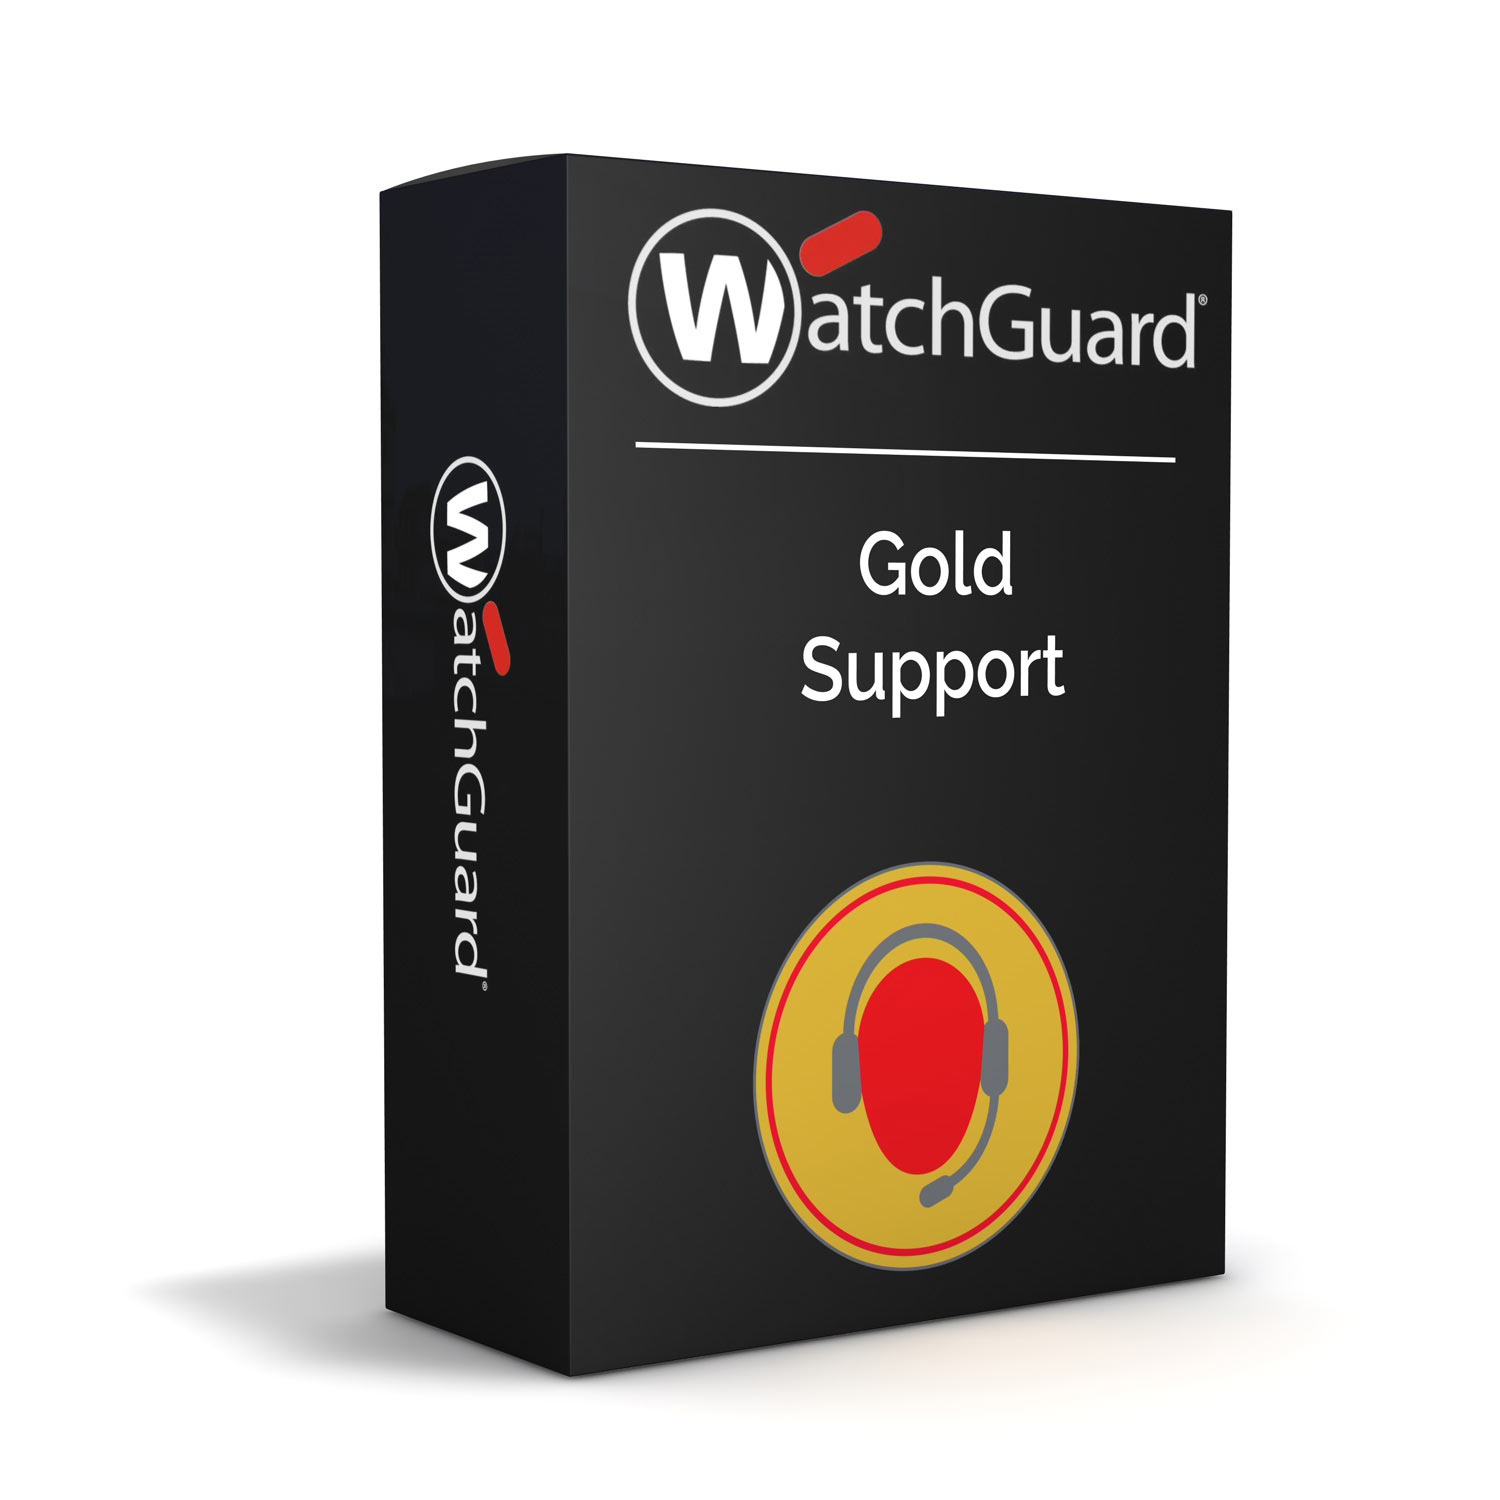 WatchGuard Gold Support Renewal/Upgrade 3-yr for Firebox T55-W